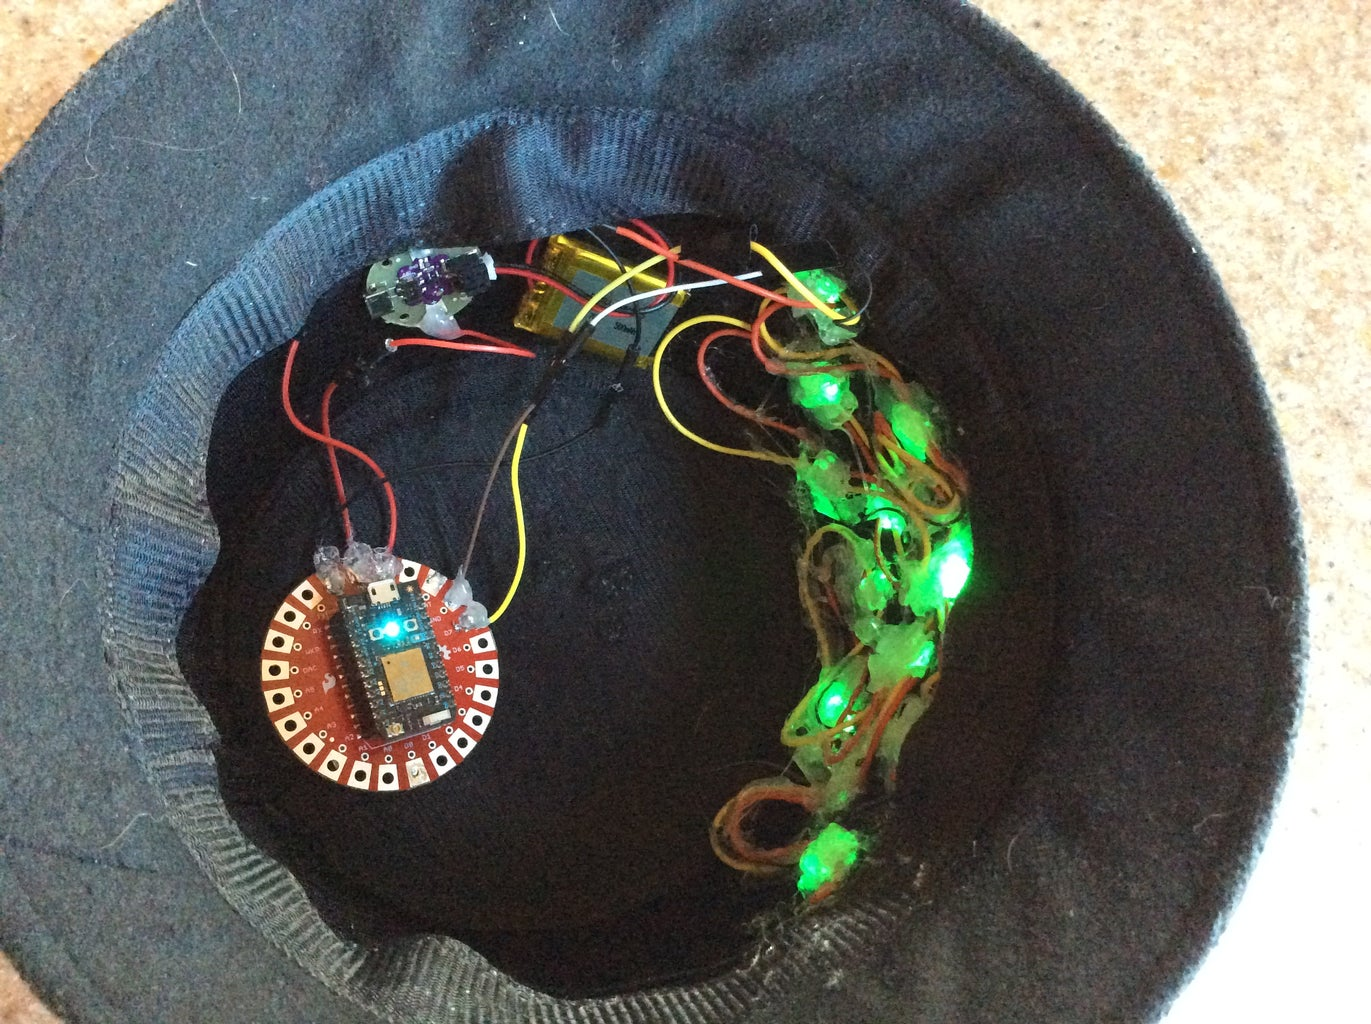 Glue the LEDs to the Inside of the Hat